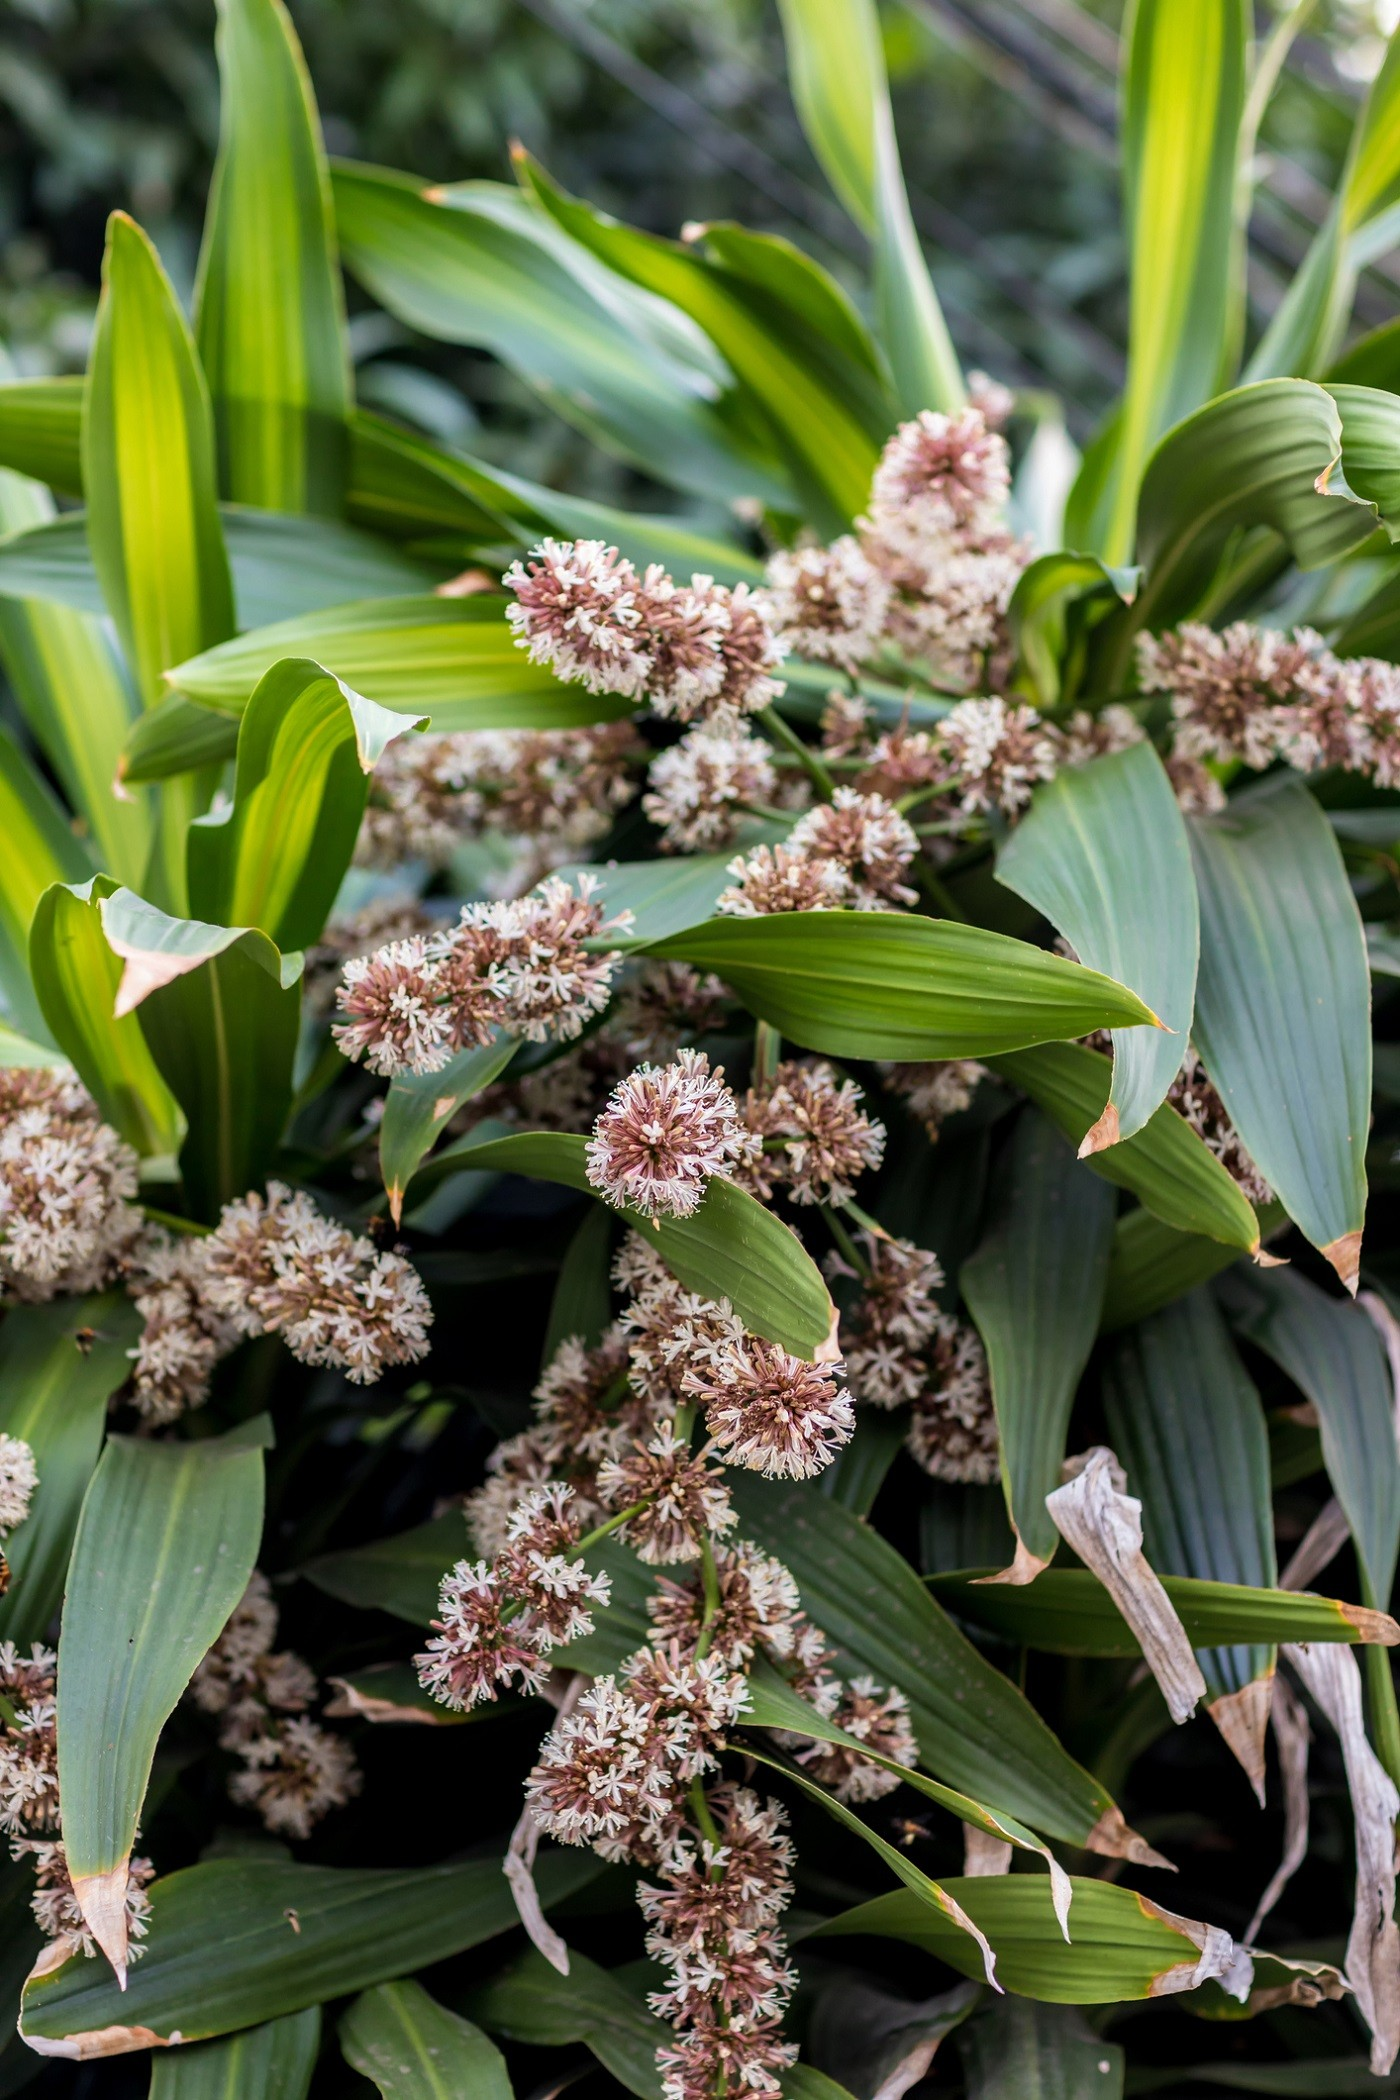 Bouquet of Queen of Dracaenas flower (Dracaena goldieana) with blurred green leaves background. Dracaena fragrans is a small to medium-sized perennial with beautiful leaves at the time of flowering. (Foto: Getty Images/iStockphoto)